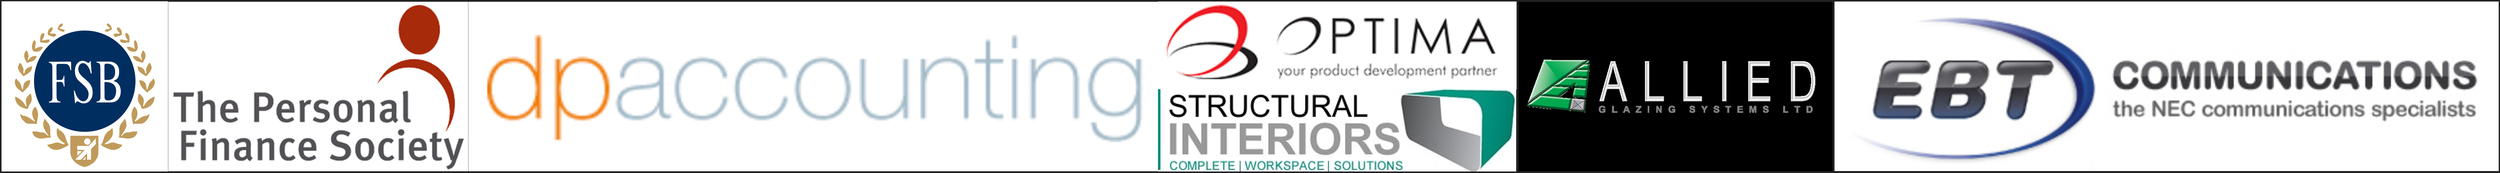 Federation of Small Businesses-The Personal Finance Society-EBT-Structural Interiors-Optima-DP Accounting